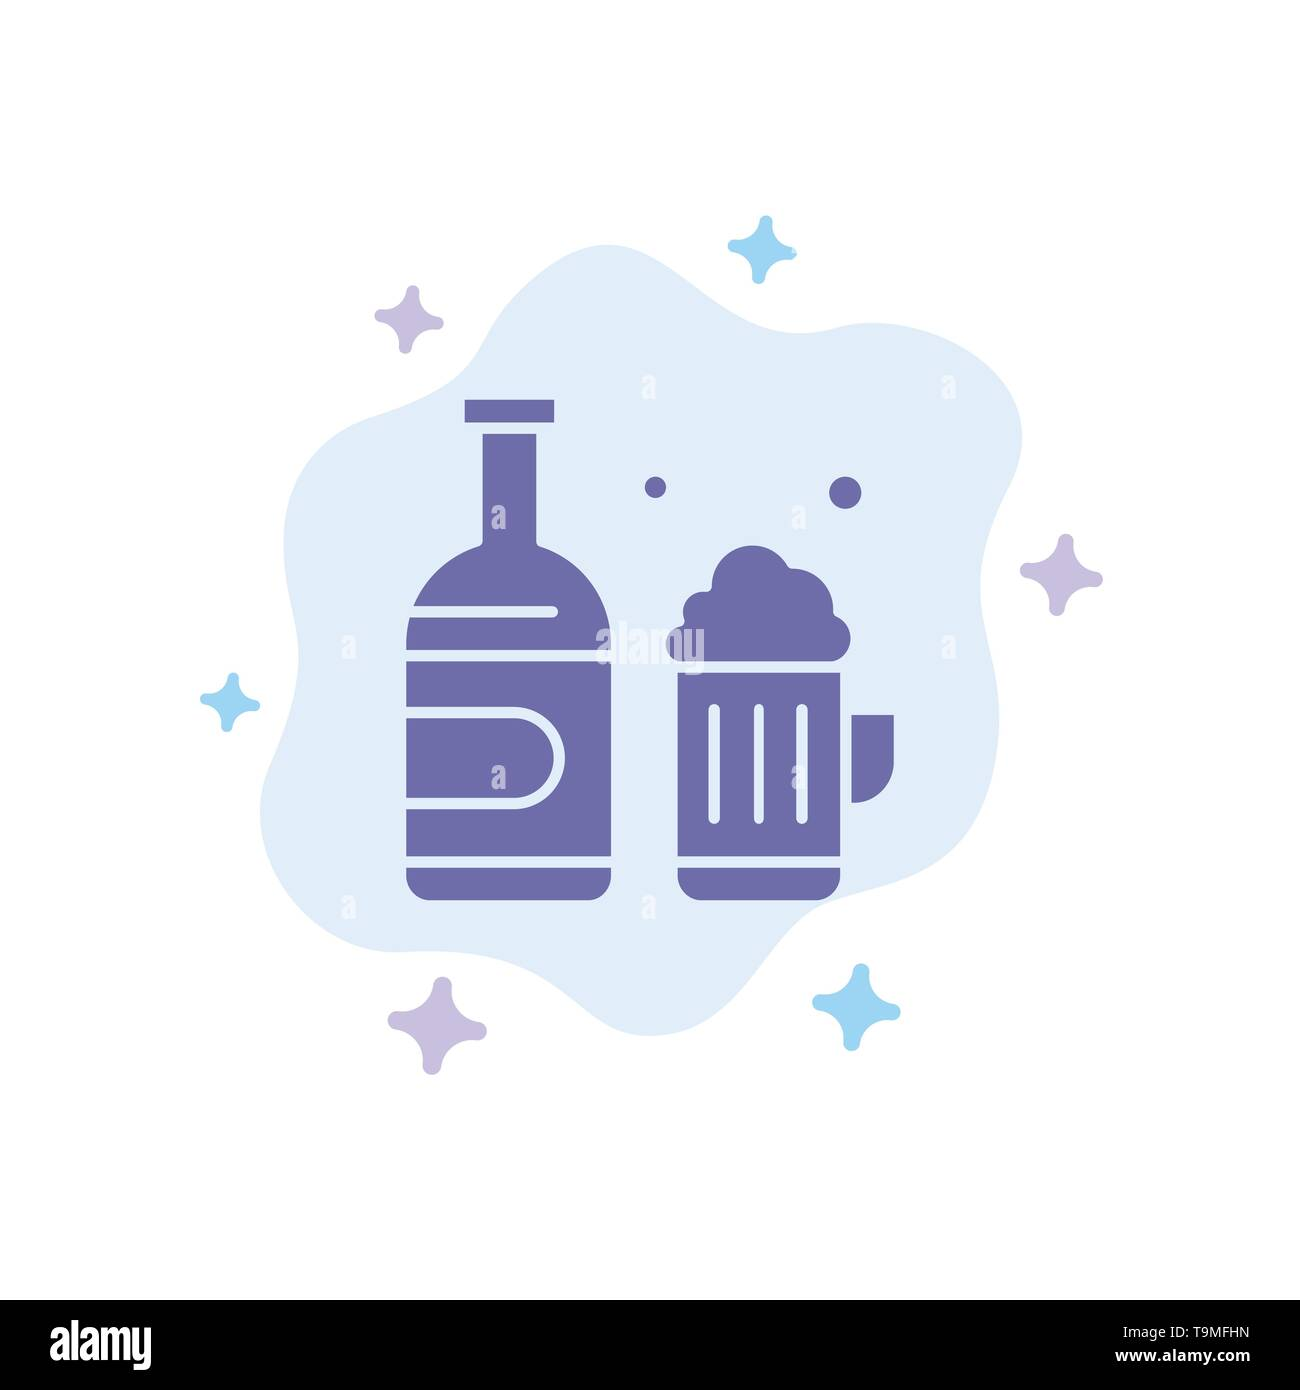 Bottle, Beer, Cup, Canada Blue Icon on Abstract Cloud Background - Stock Image